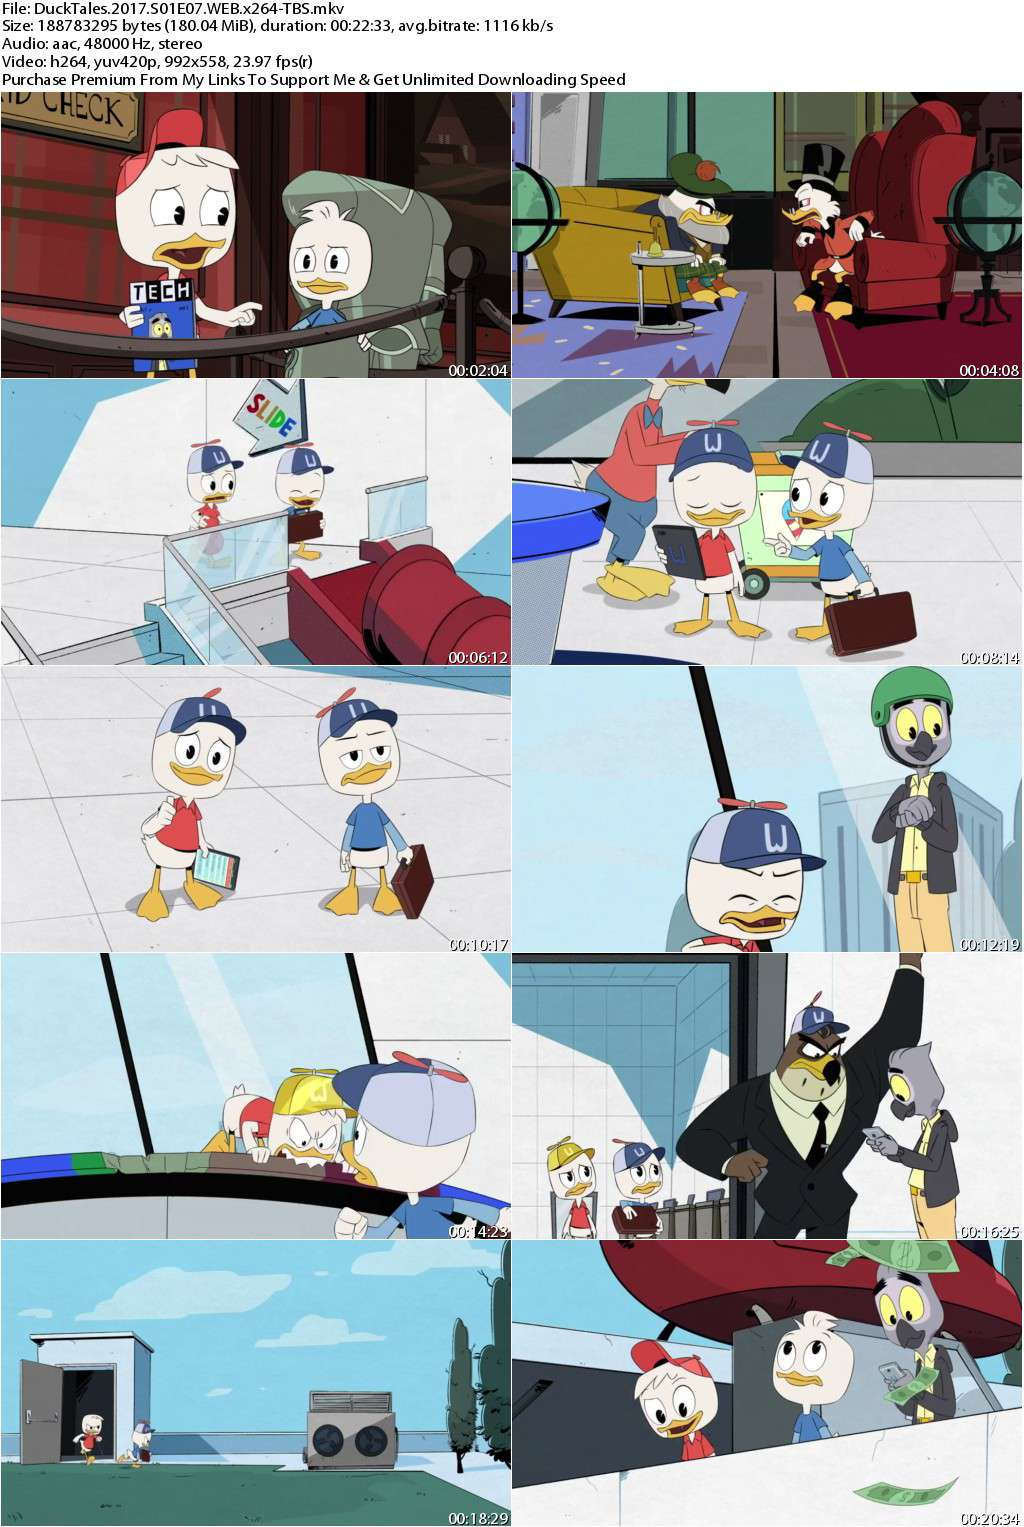 DuckTales 2017 S01E07 WEB x264-TBS